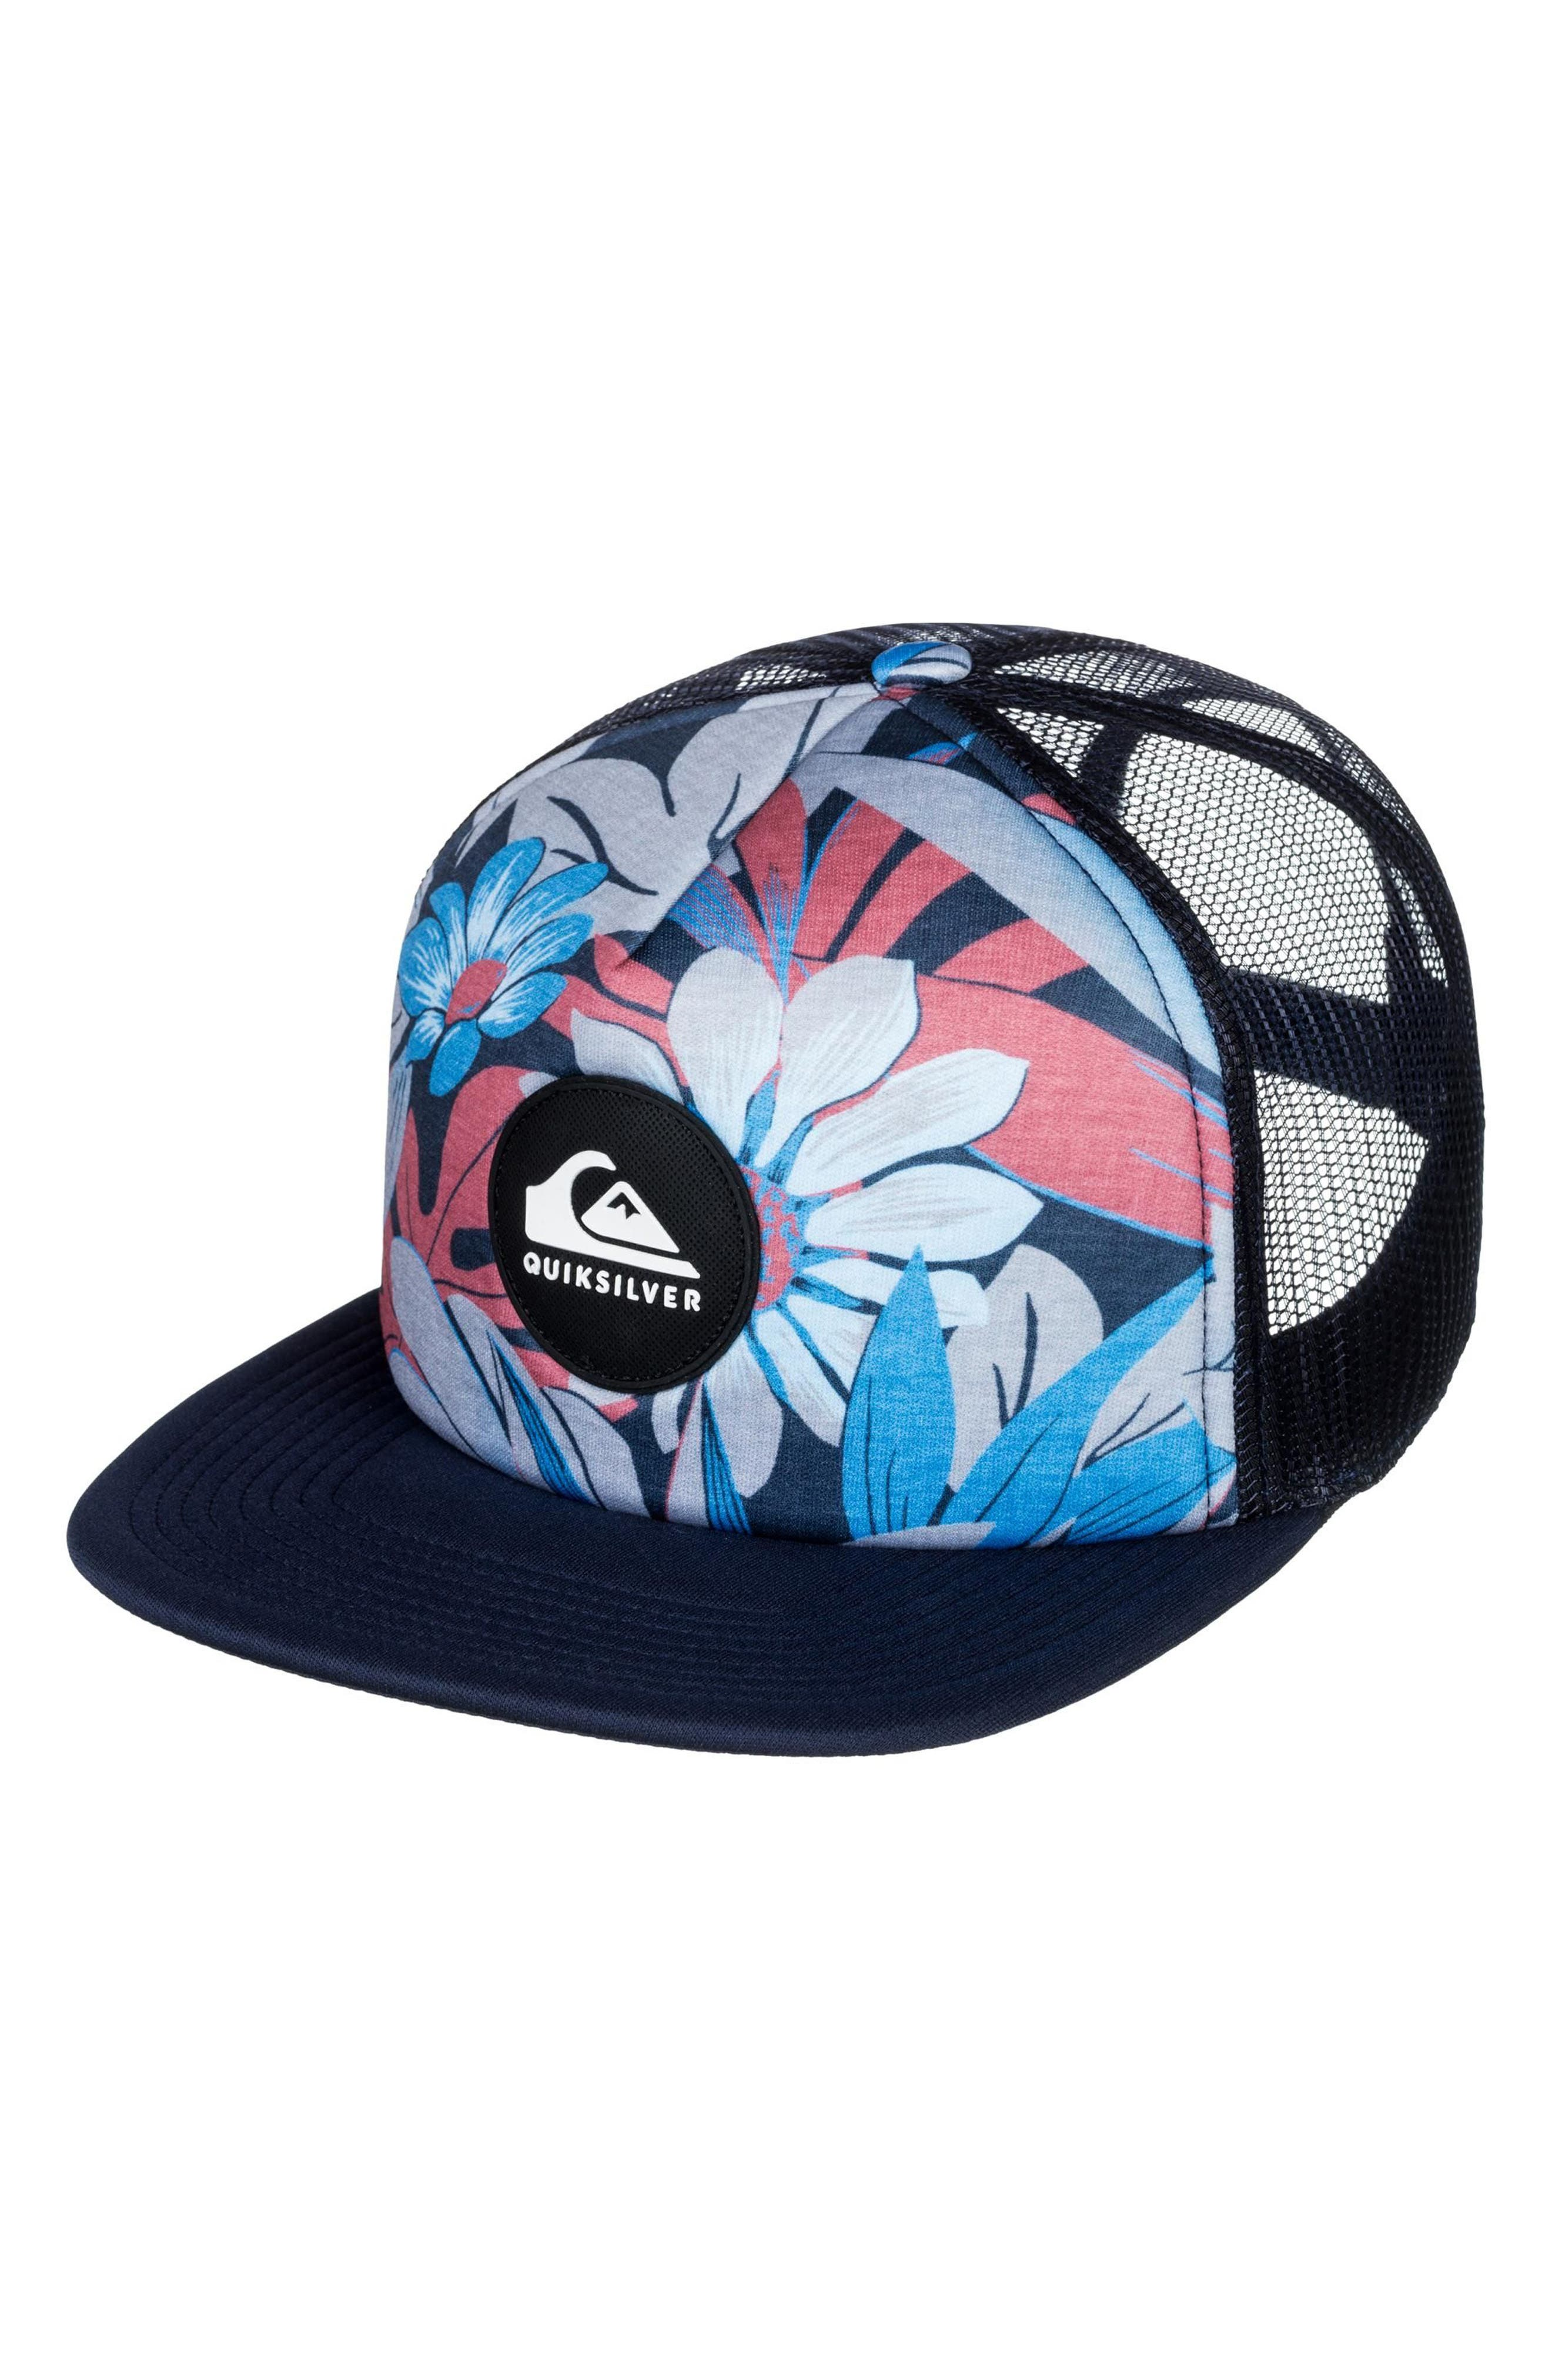 Quicksilver Faded Out Trucker Hat,                             Main thumbnail 1, color,                             Navy Blazer